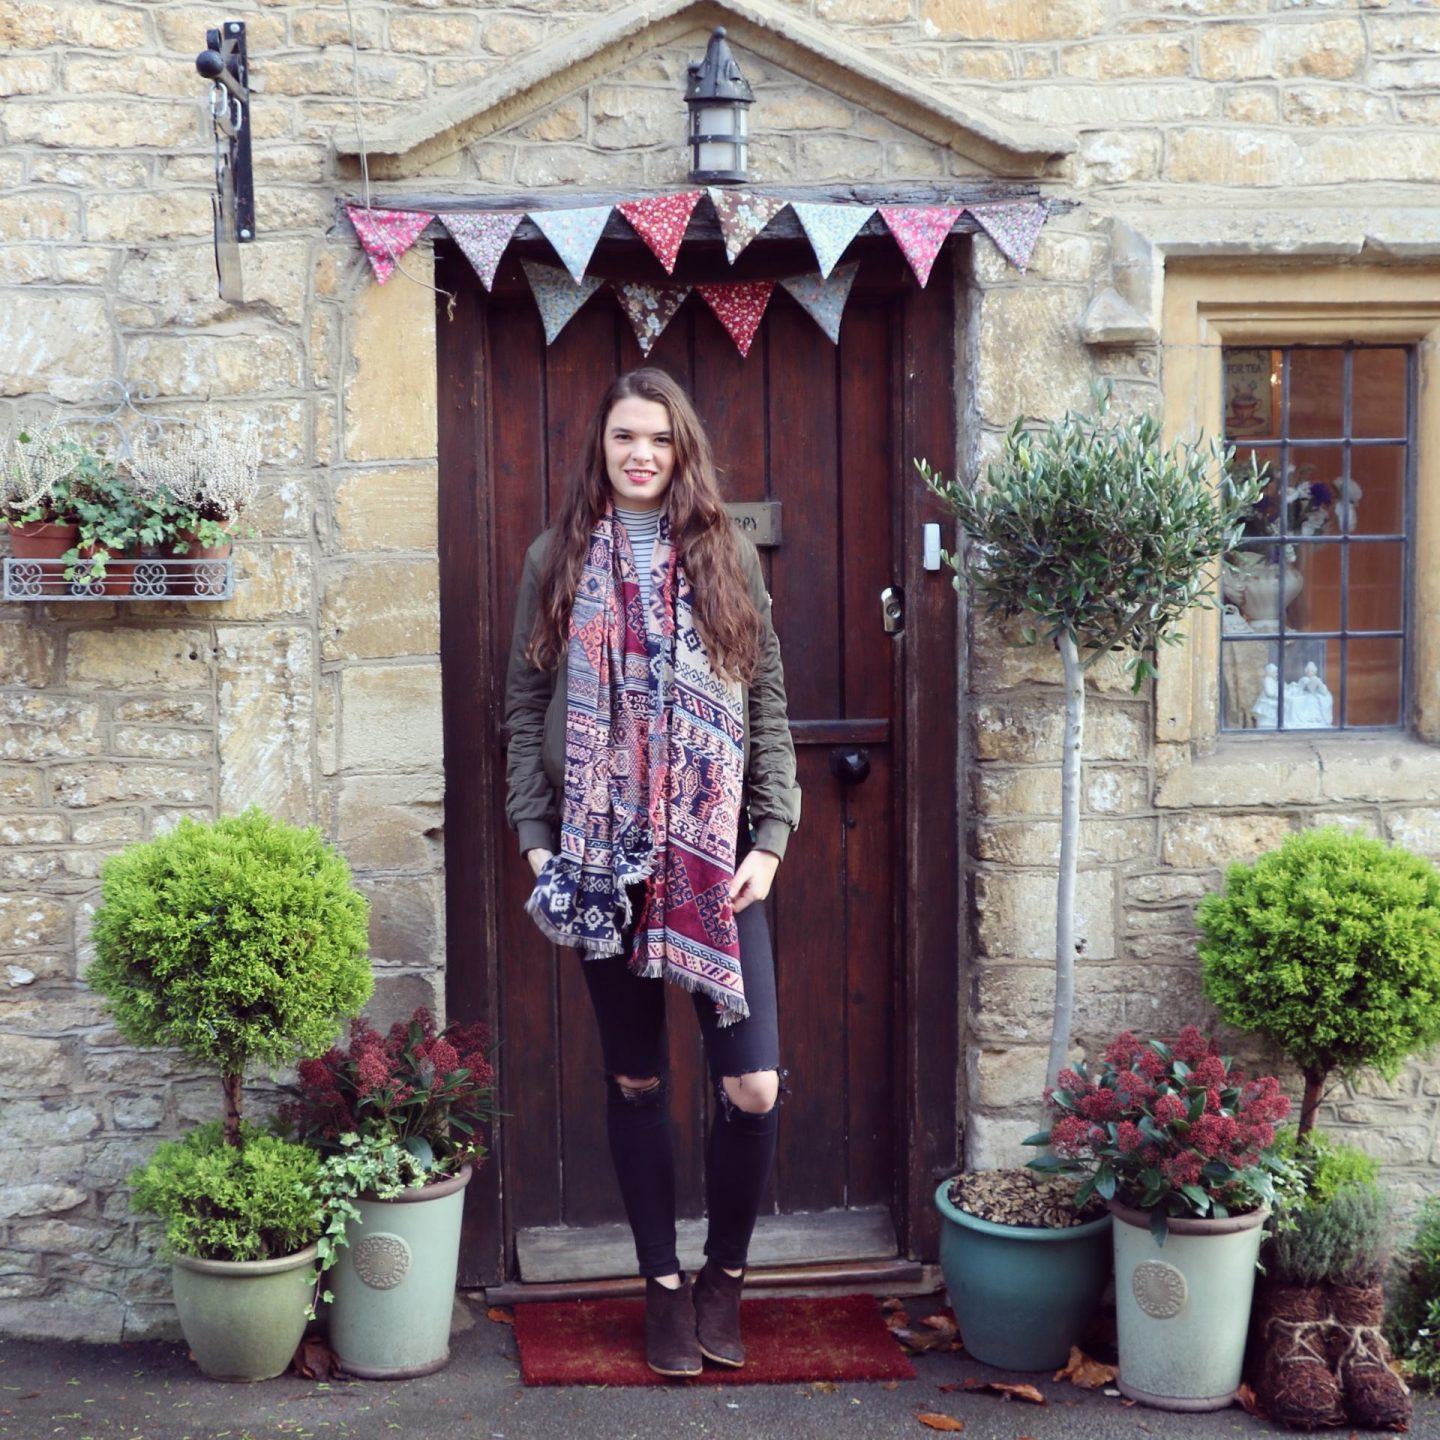 Travels: Castle Combe